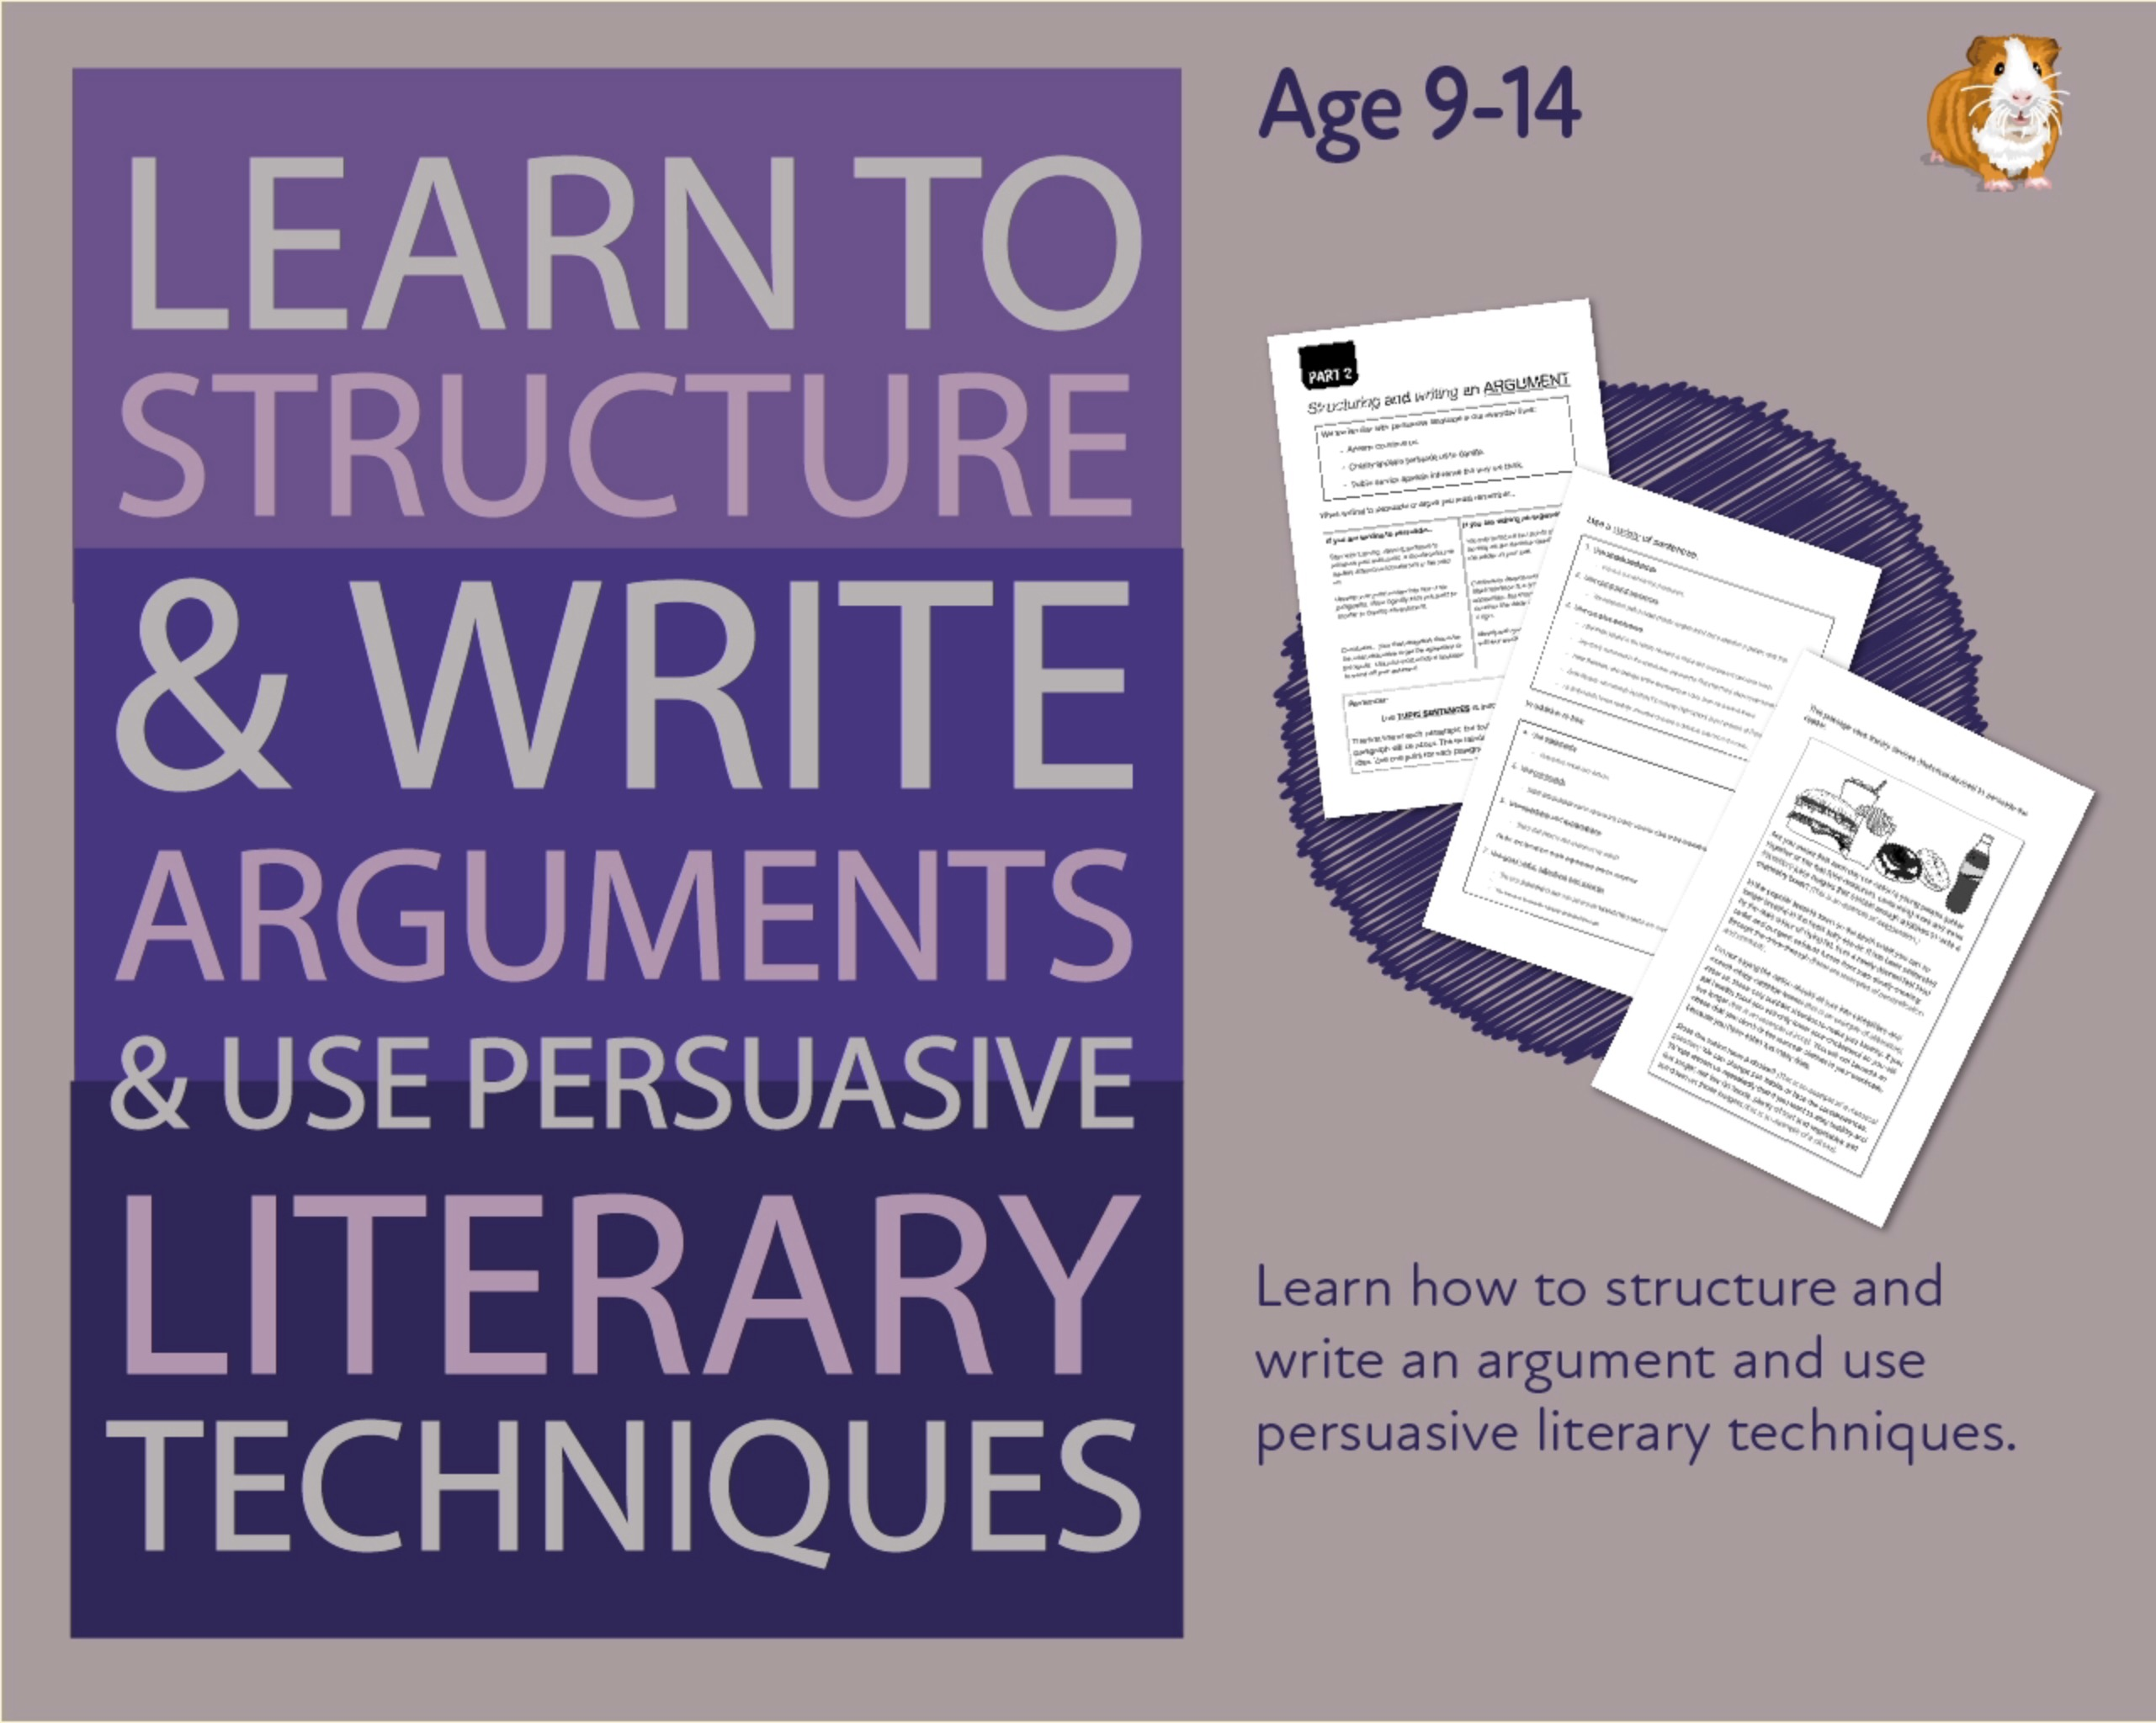 How To Structure And Write An Argument Using Literary Devices (9-14 years)